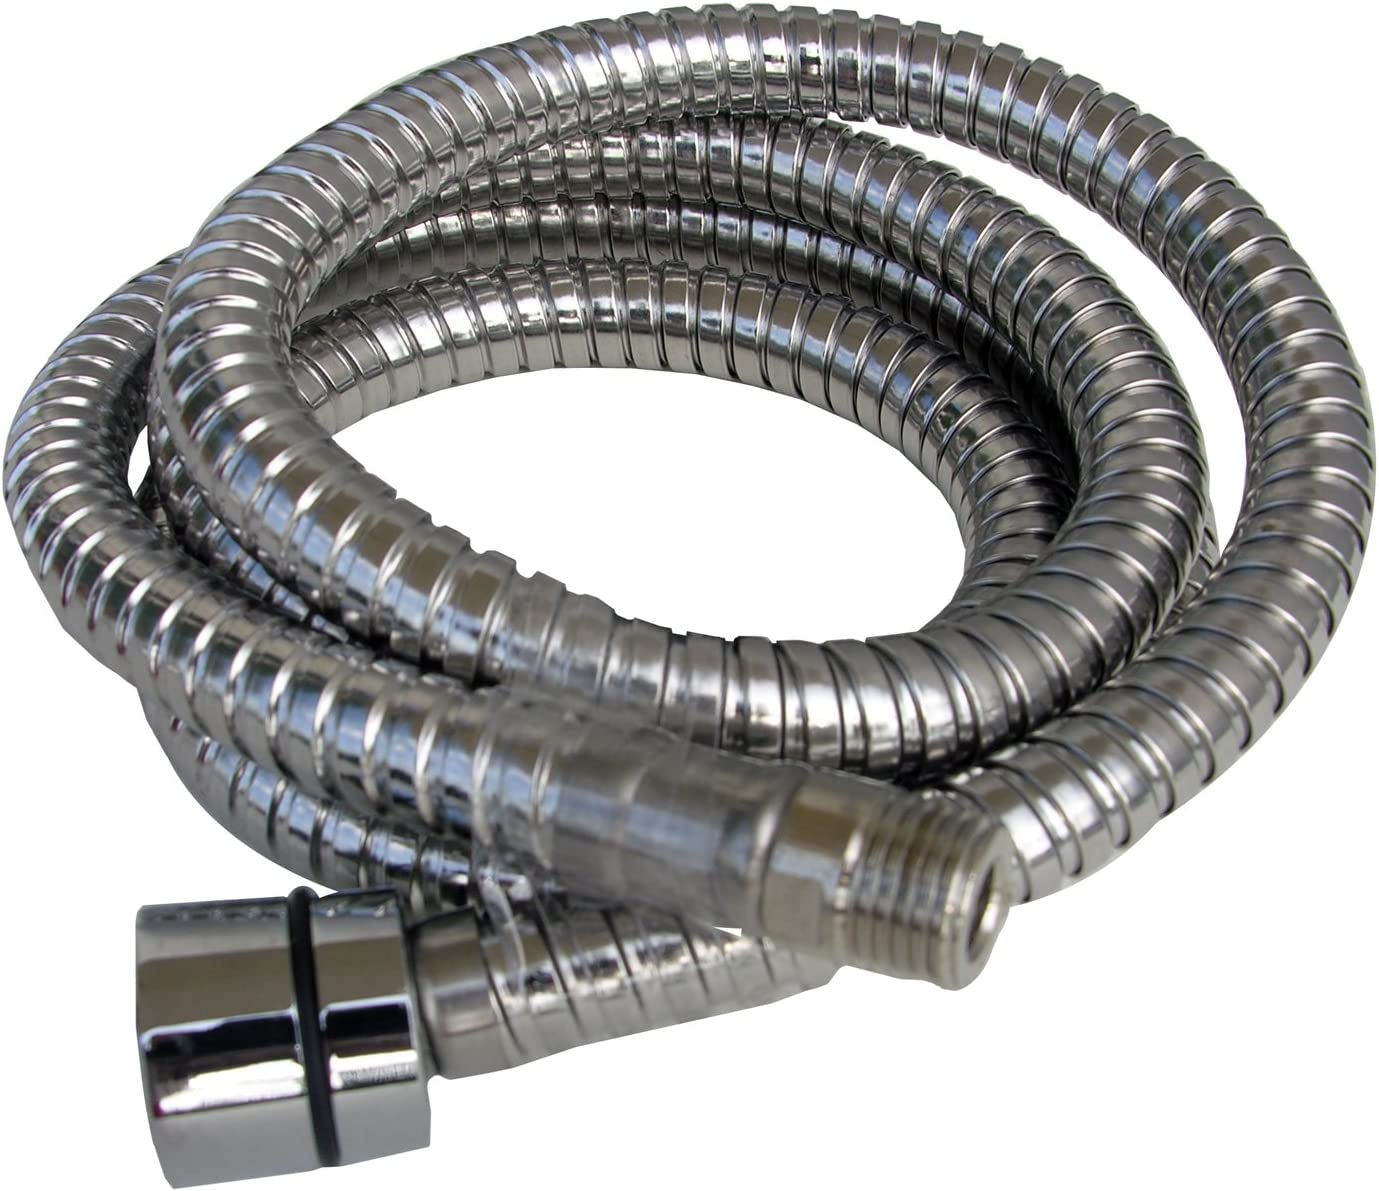 Lasco 09 6031 Kitchen Pull Out Spray Hose Replacement Fits Price Pfister Series 533 And 538 Faucet Spray Hoses Amazon Com